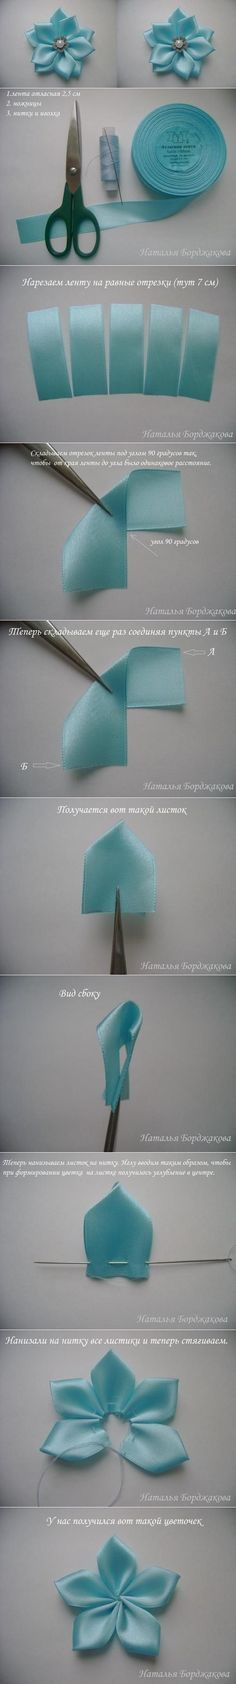 DIY Pointed Petals Ribbon Flower DIY Pointed Petals Ribbon Flower Okay, so I cant read Russian, but this is cool. I need to figure out these dimensions so I can recreate it!